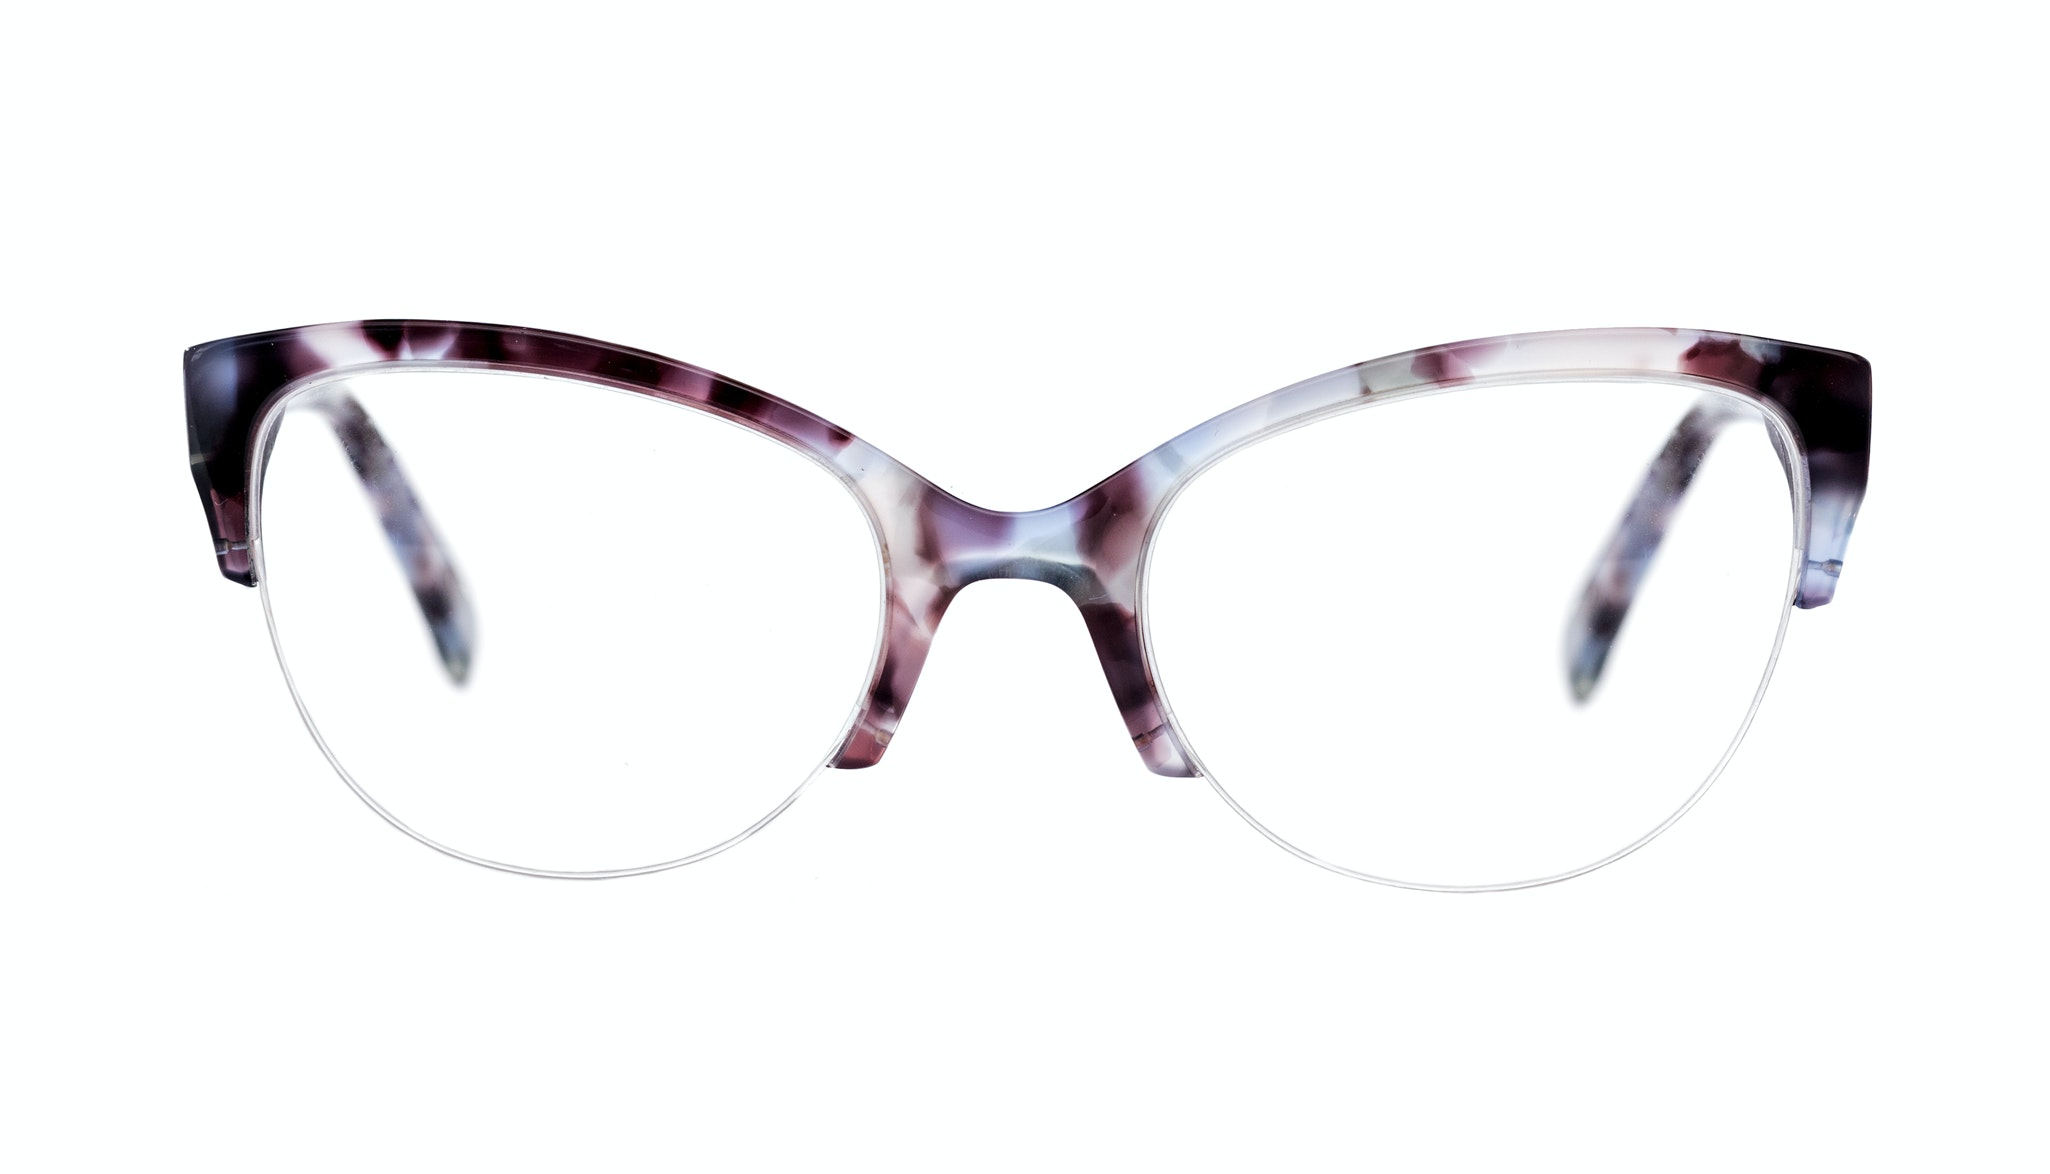 Affordable Fashion Glasses Cat Eye Eyeglasses Women Lovely Lilac Tort Front